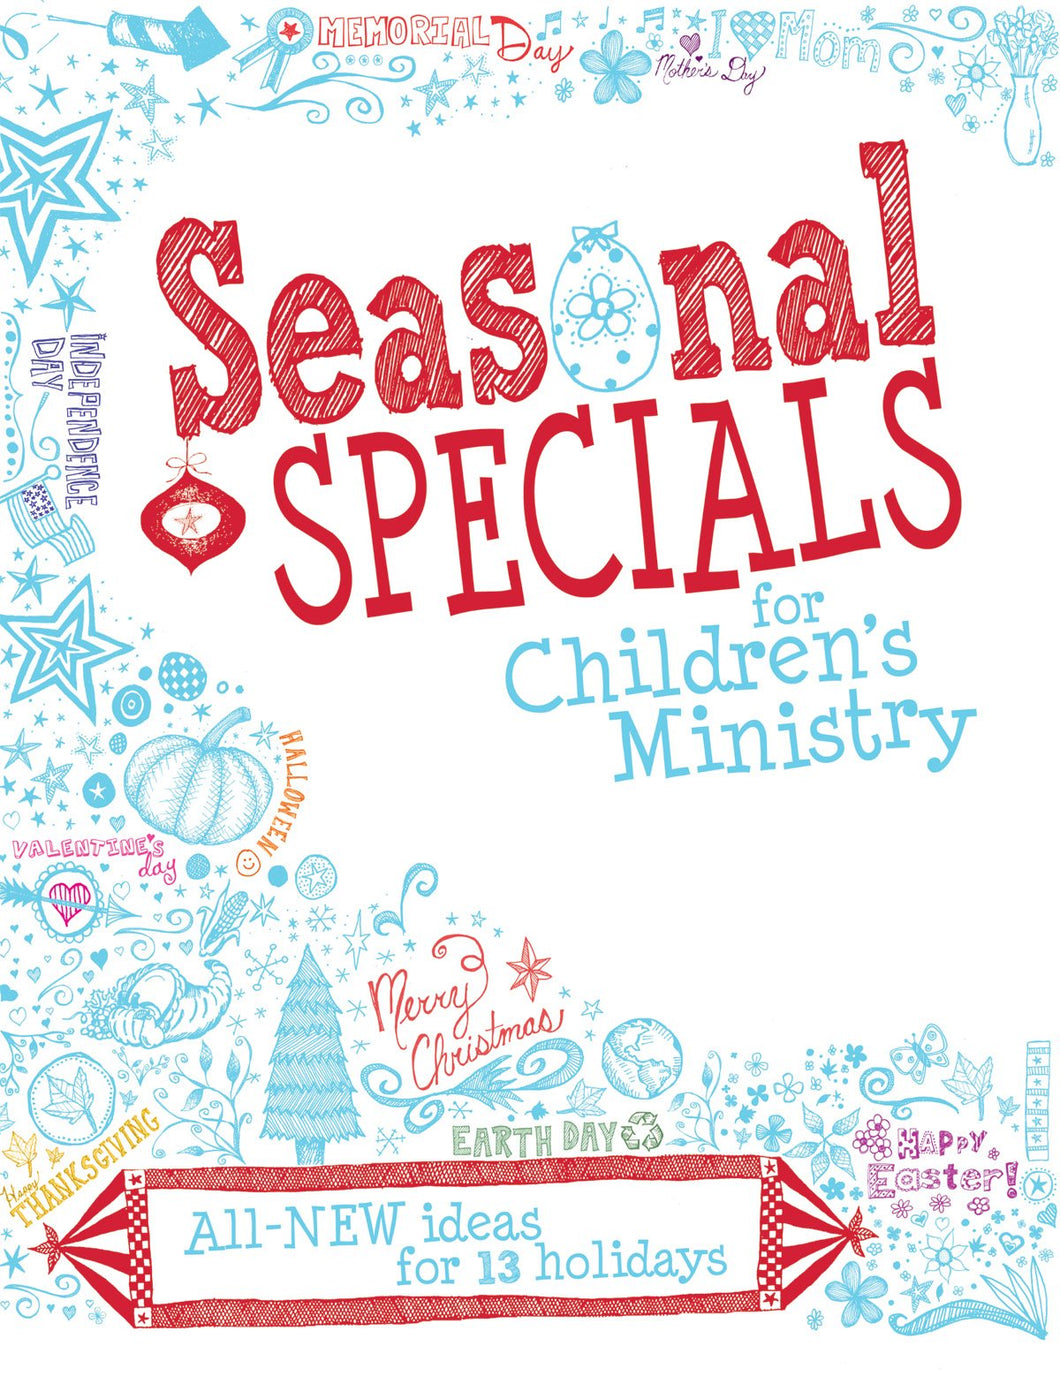 Seasonal Specials for Children's Ministry: All-New Ideas for 13 Holidays